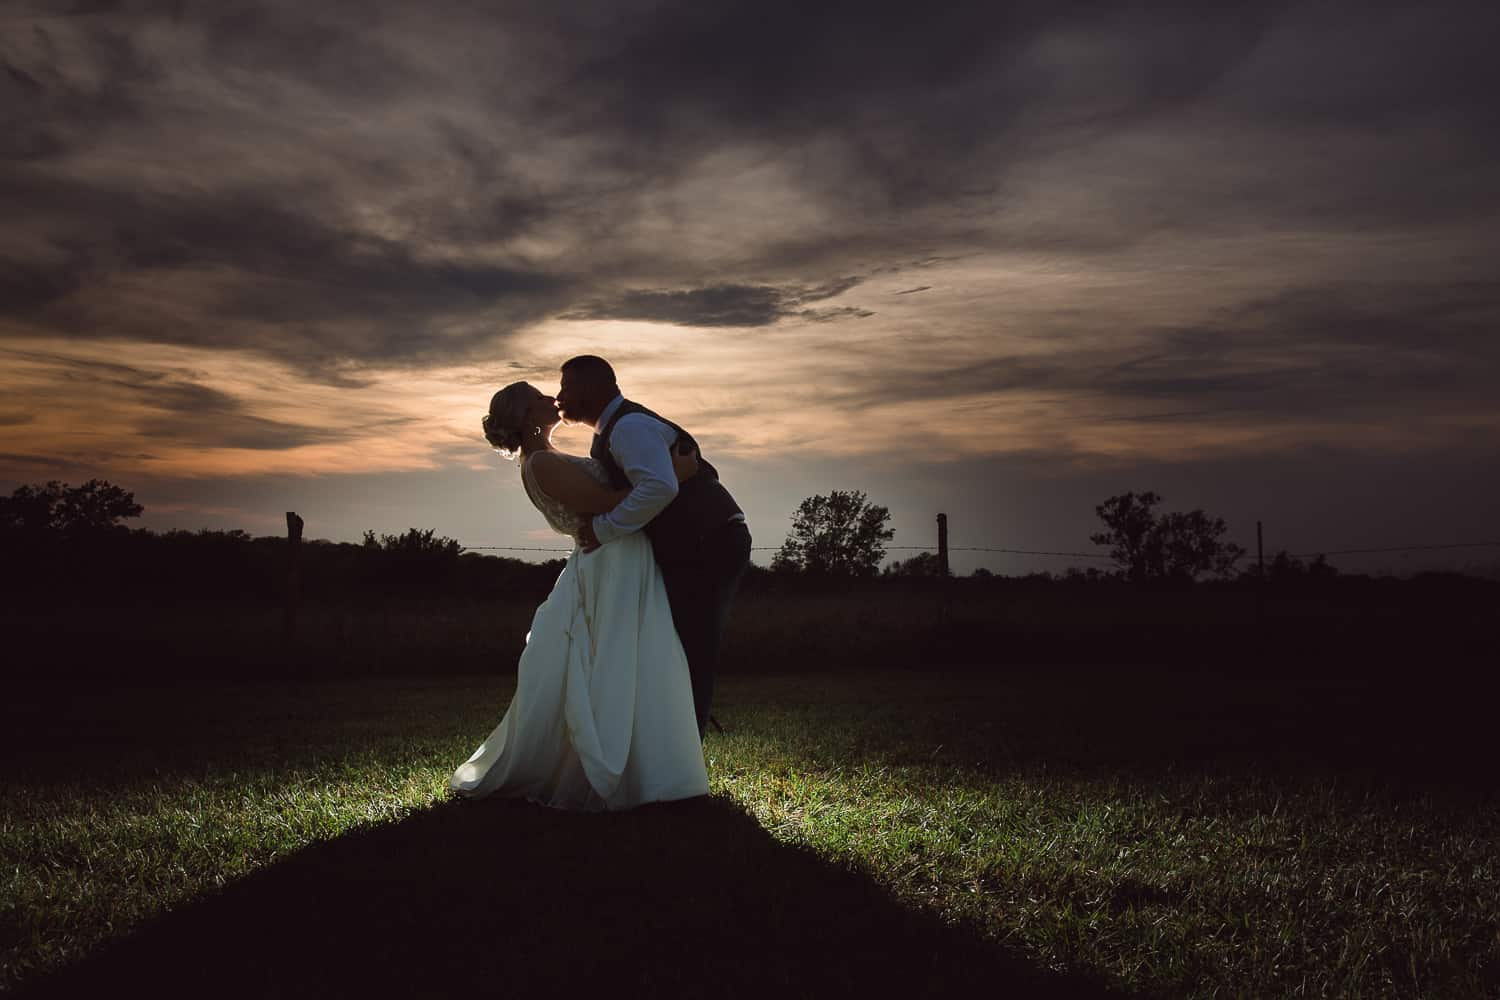 Backlit Bride and groom sunset wedding portraits